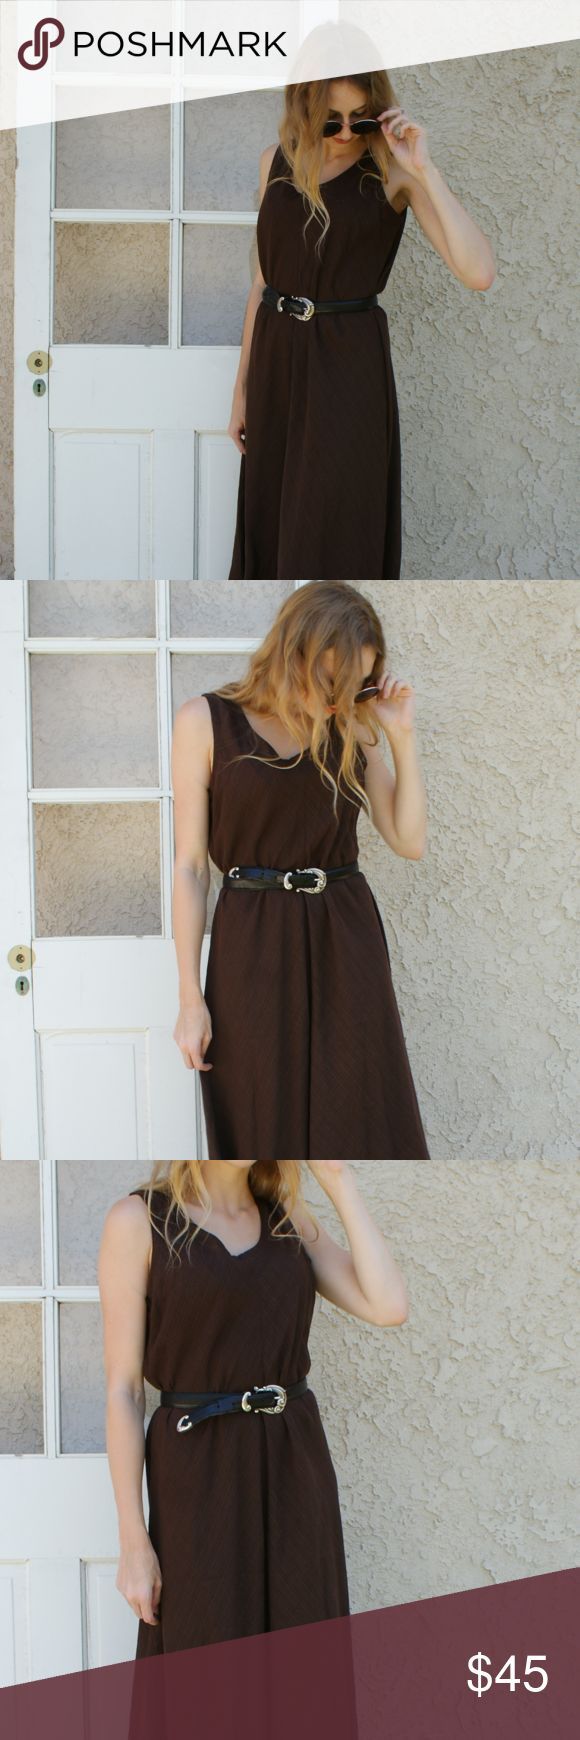 Eileen Fisher Brown Sleeveless Maxi Dress Sz M Eileen Fisher Brown Sleeveless Maxi Dress Sz M- Cute Maxi Dress that can be paired with a chunky heel and cinched with a concho belt for a grunge look. Add a light wash denim jacket for those cool summer nights. Eileen Fisher Dresses Maxi